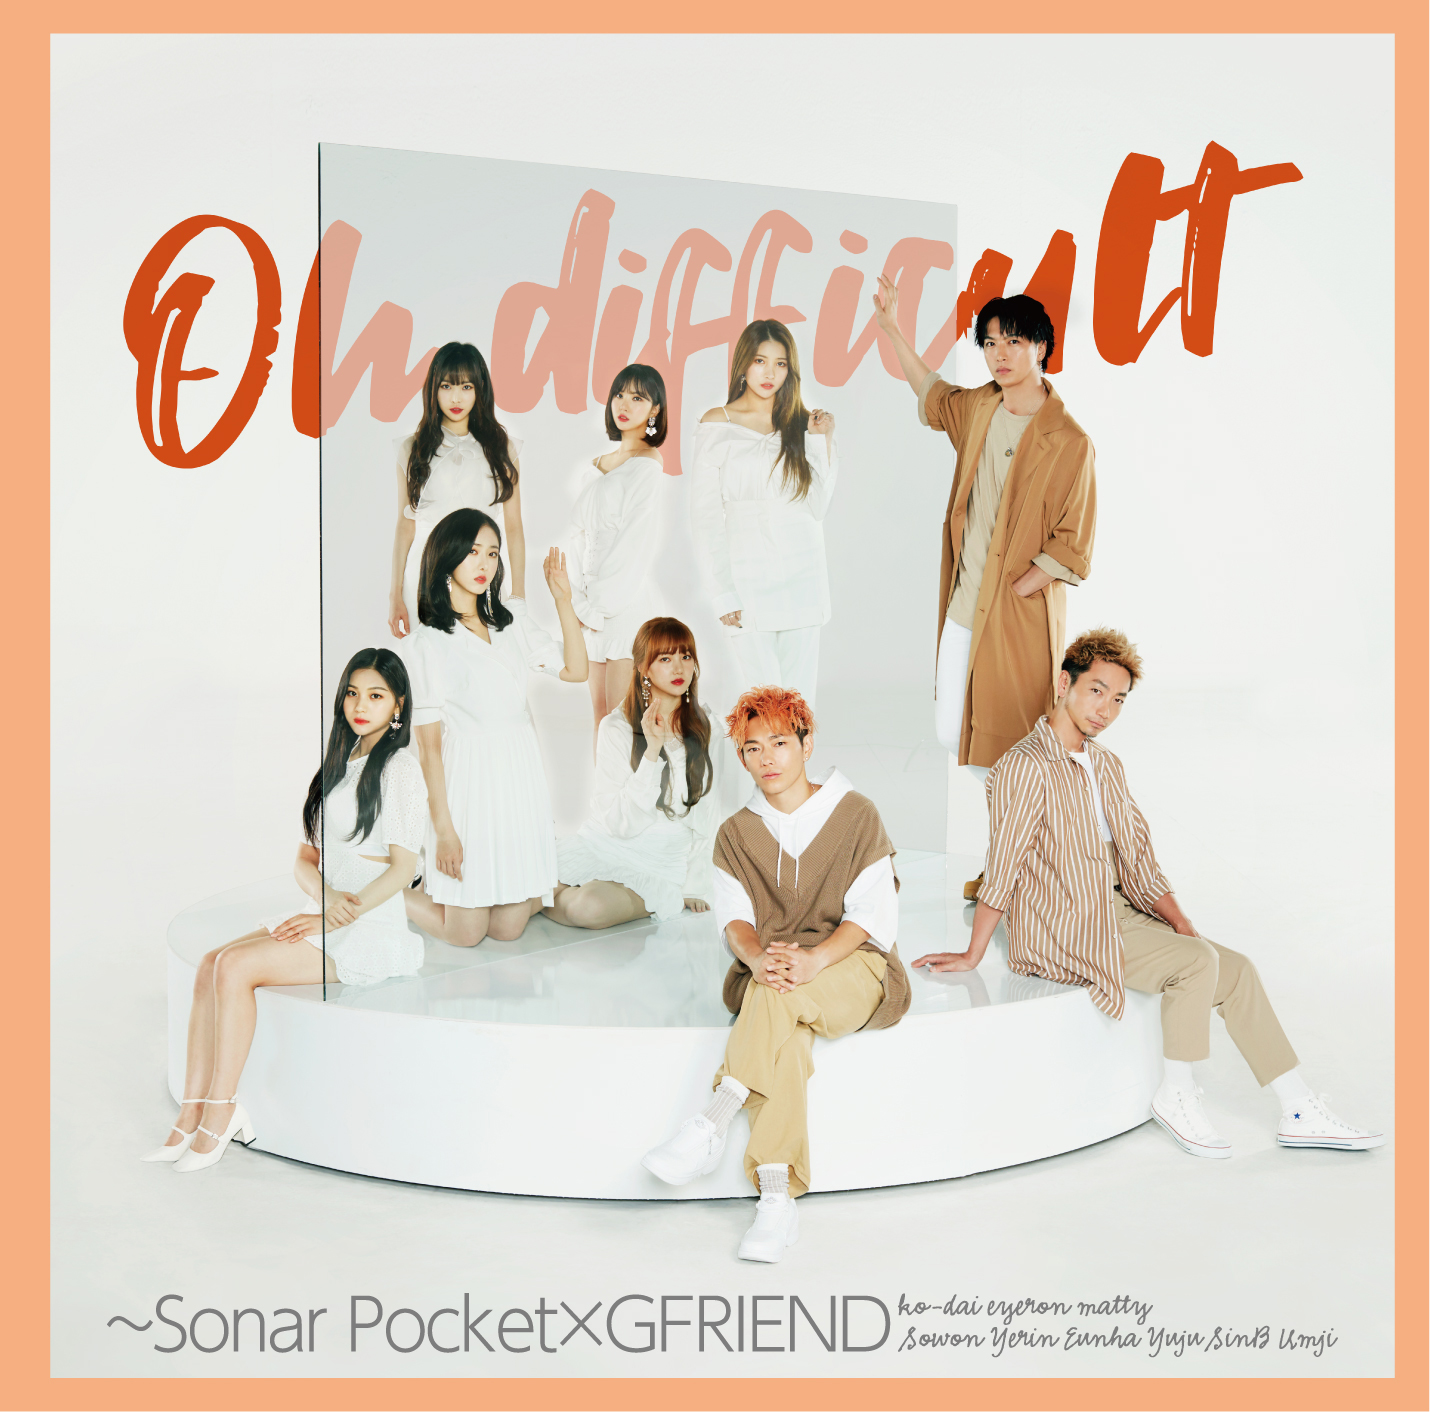 Sonar Pocket「Oh difficult ~Sonar Pocket×GFRIEND」初回盤B